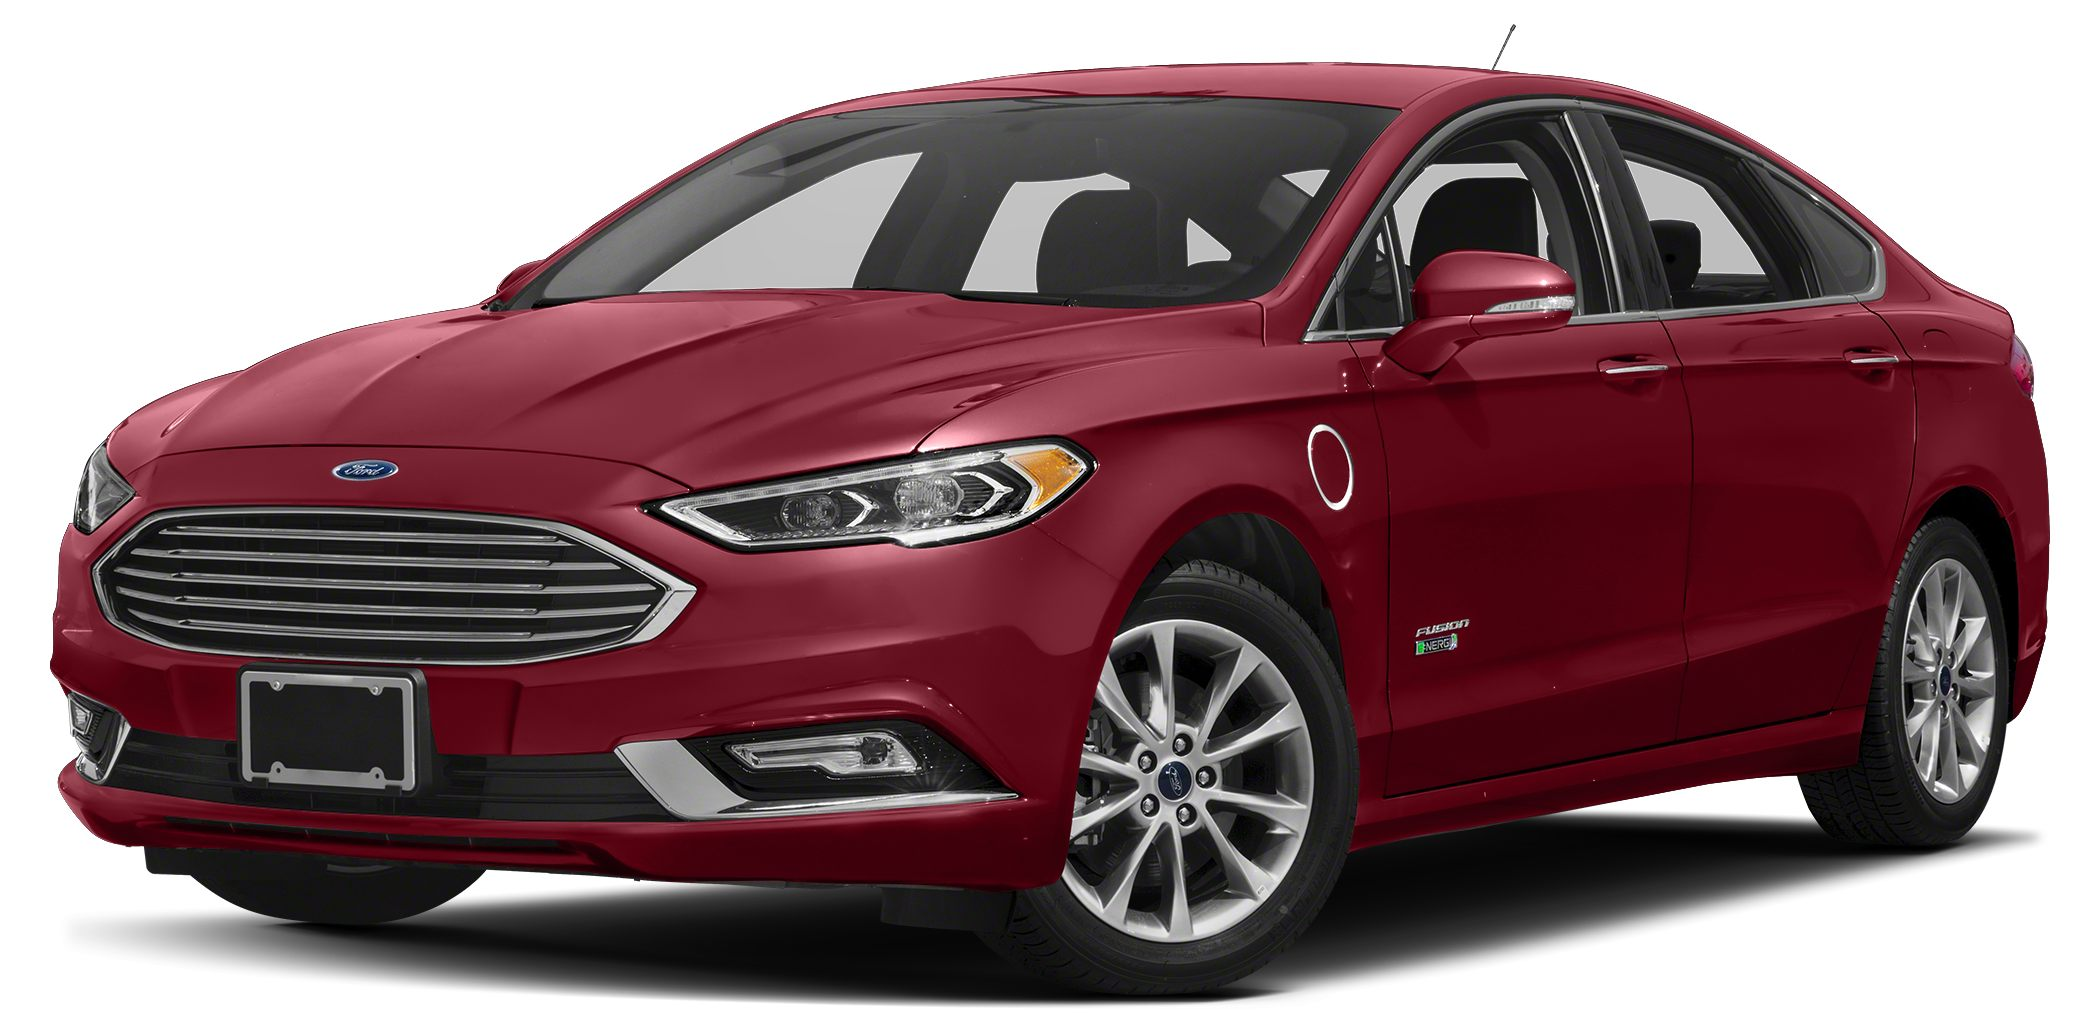 2017 Ford Fusion Energi Titanium The newly designed Ford Fusion Energi is more stunning than ever